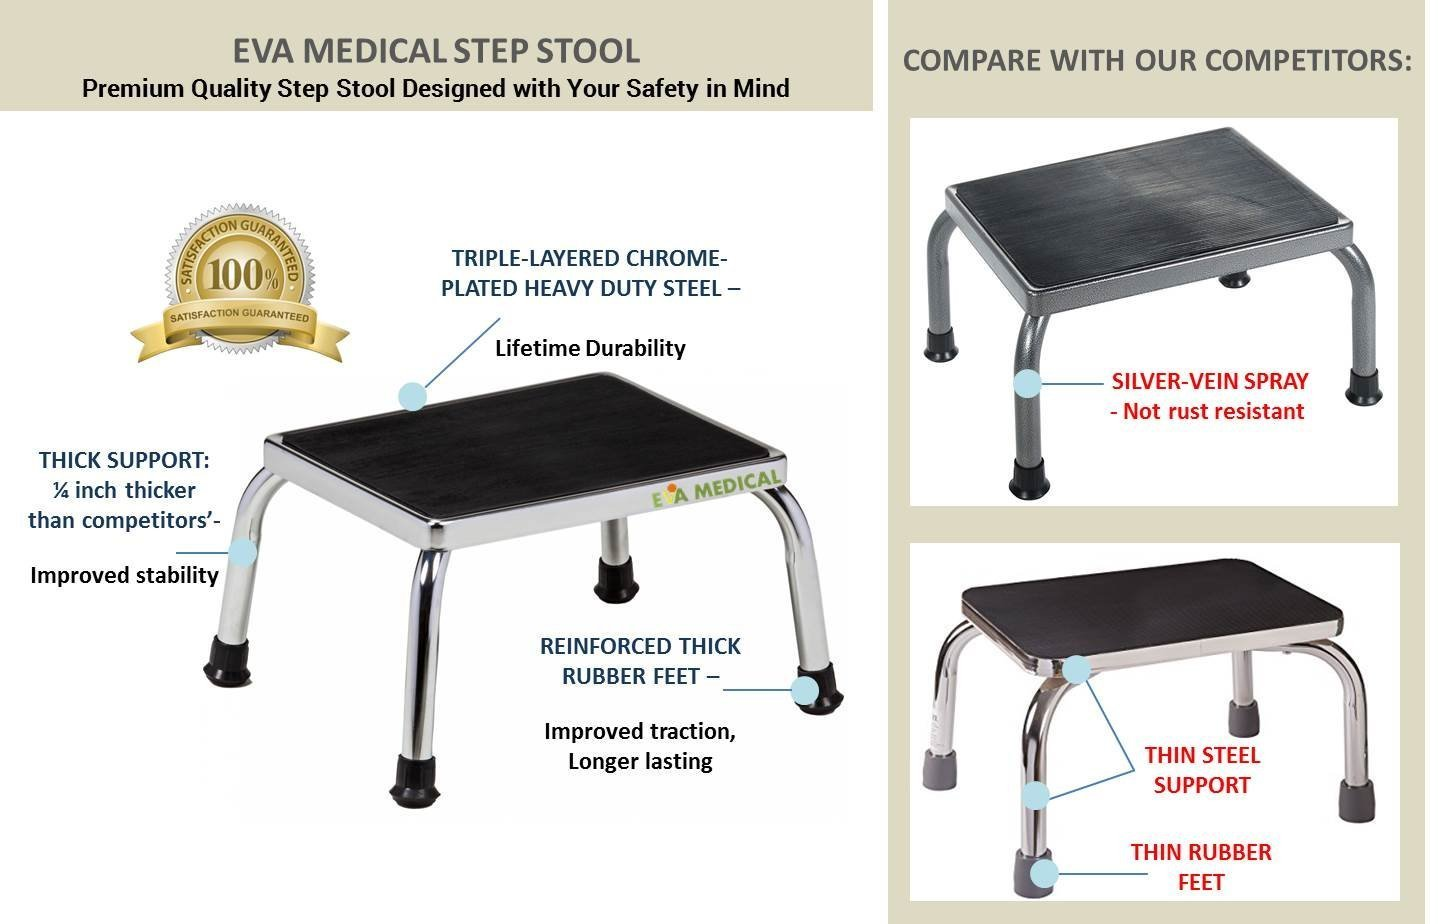 Amazon.com Medical Chrome Frame Foot Step Stool with Anti-Slip Rubber Platform for the Bedroom Kitchen and Bathroom (Medical Grade and Fully Assembled ...  sc 1 st  Amazon.com & Amazon.com: Medical Chrome Frame Foot Step Stool with Anti-Slip ... islam-shia.org